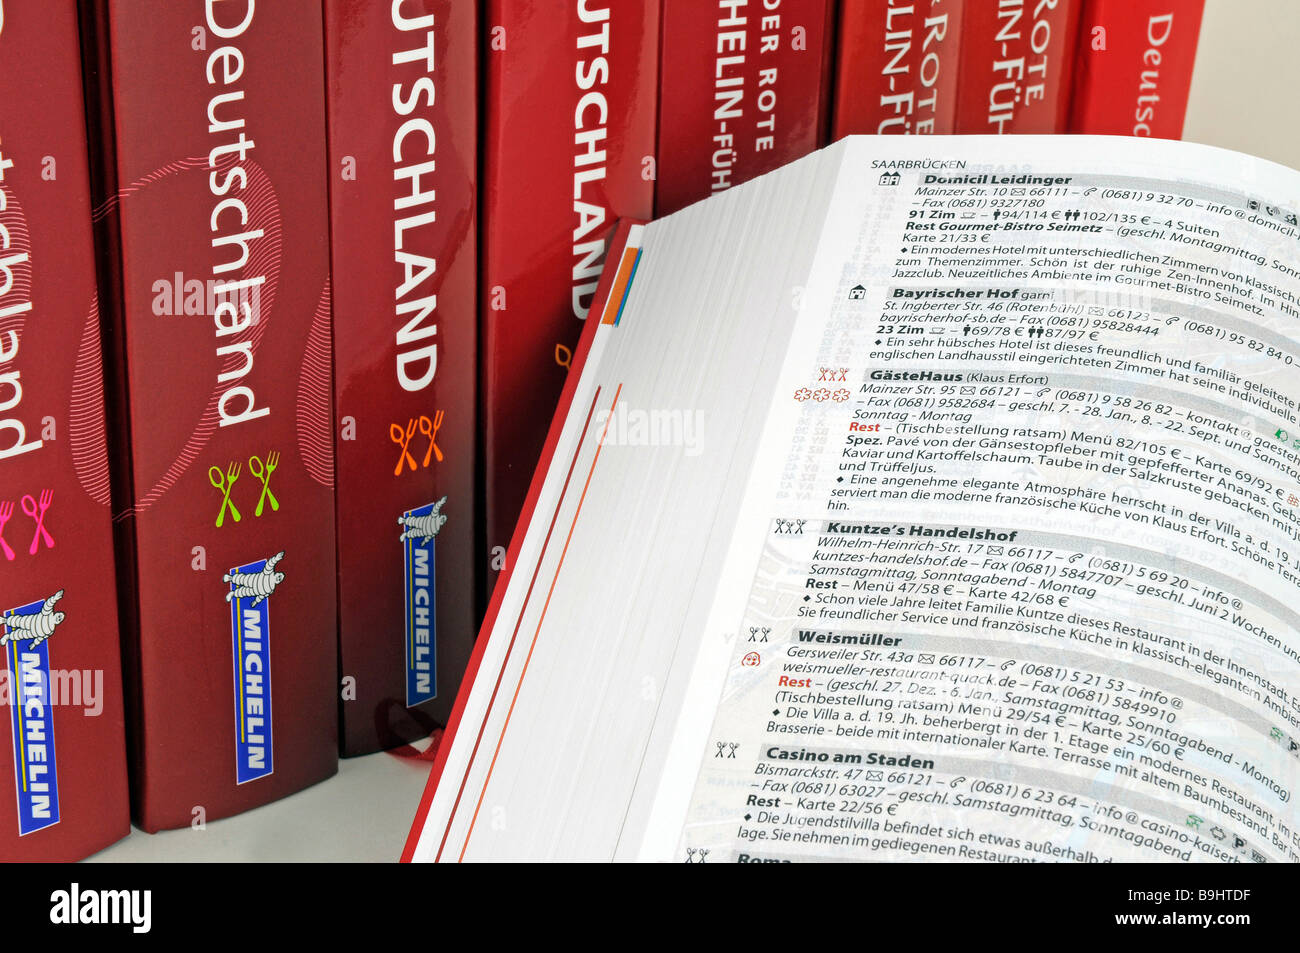 Michelin Guide for Germany with description of a 3-Star restaurant - Stock Image